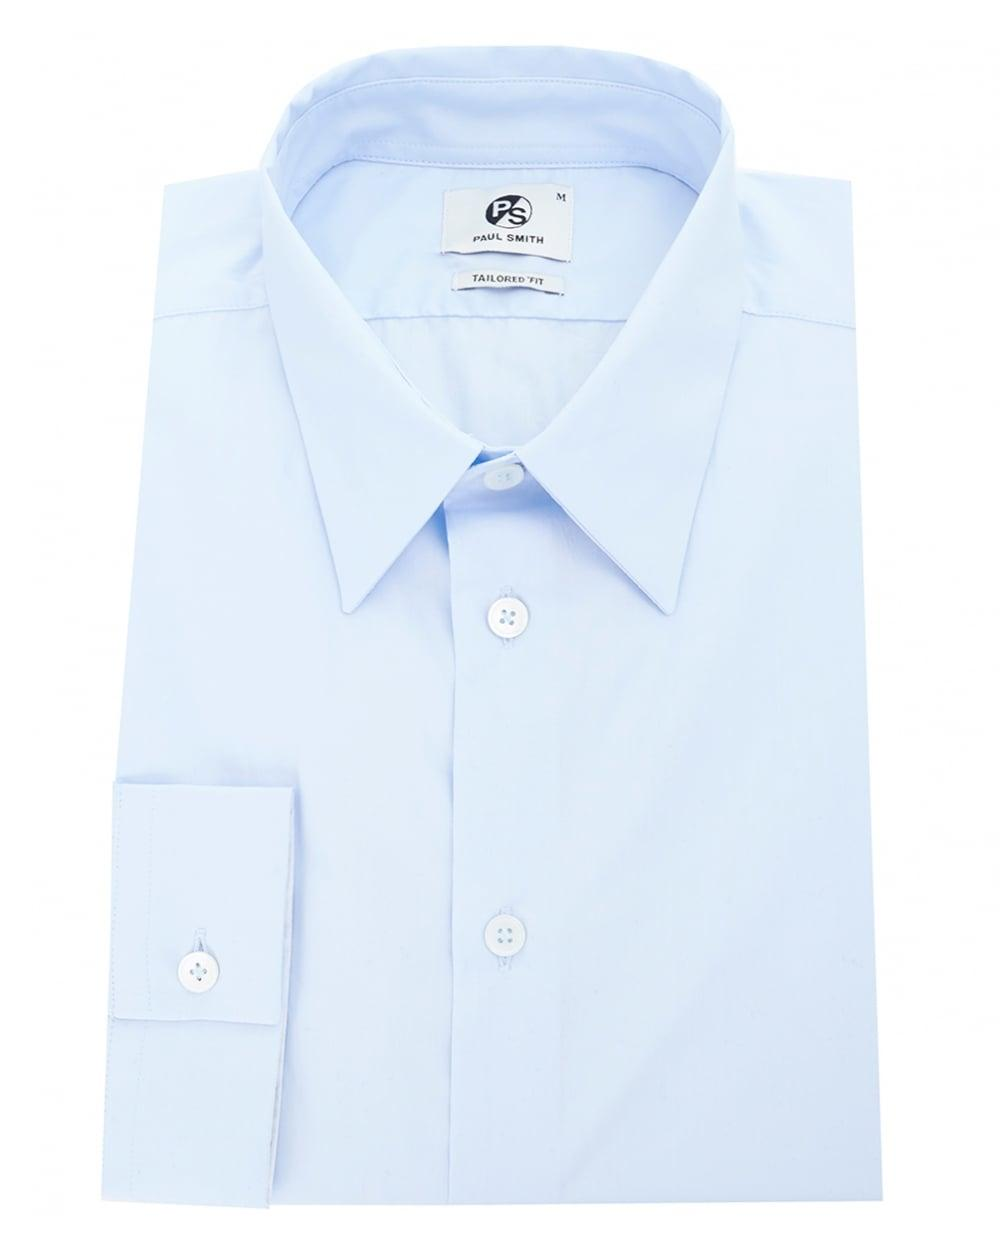 Paul smith tailored single cuff shirt in blue for men lyst for Single cuff dress shirt